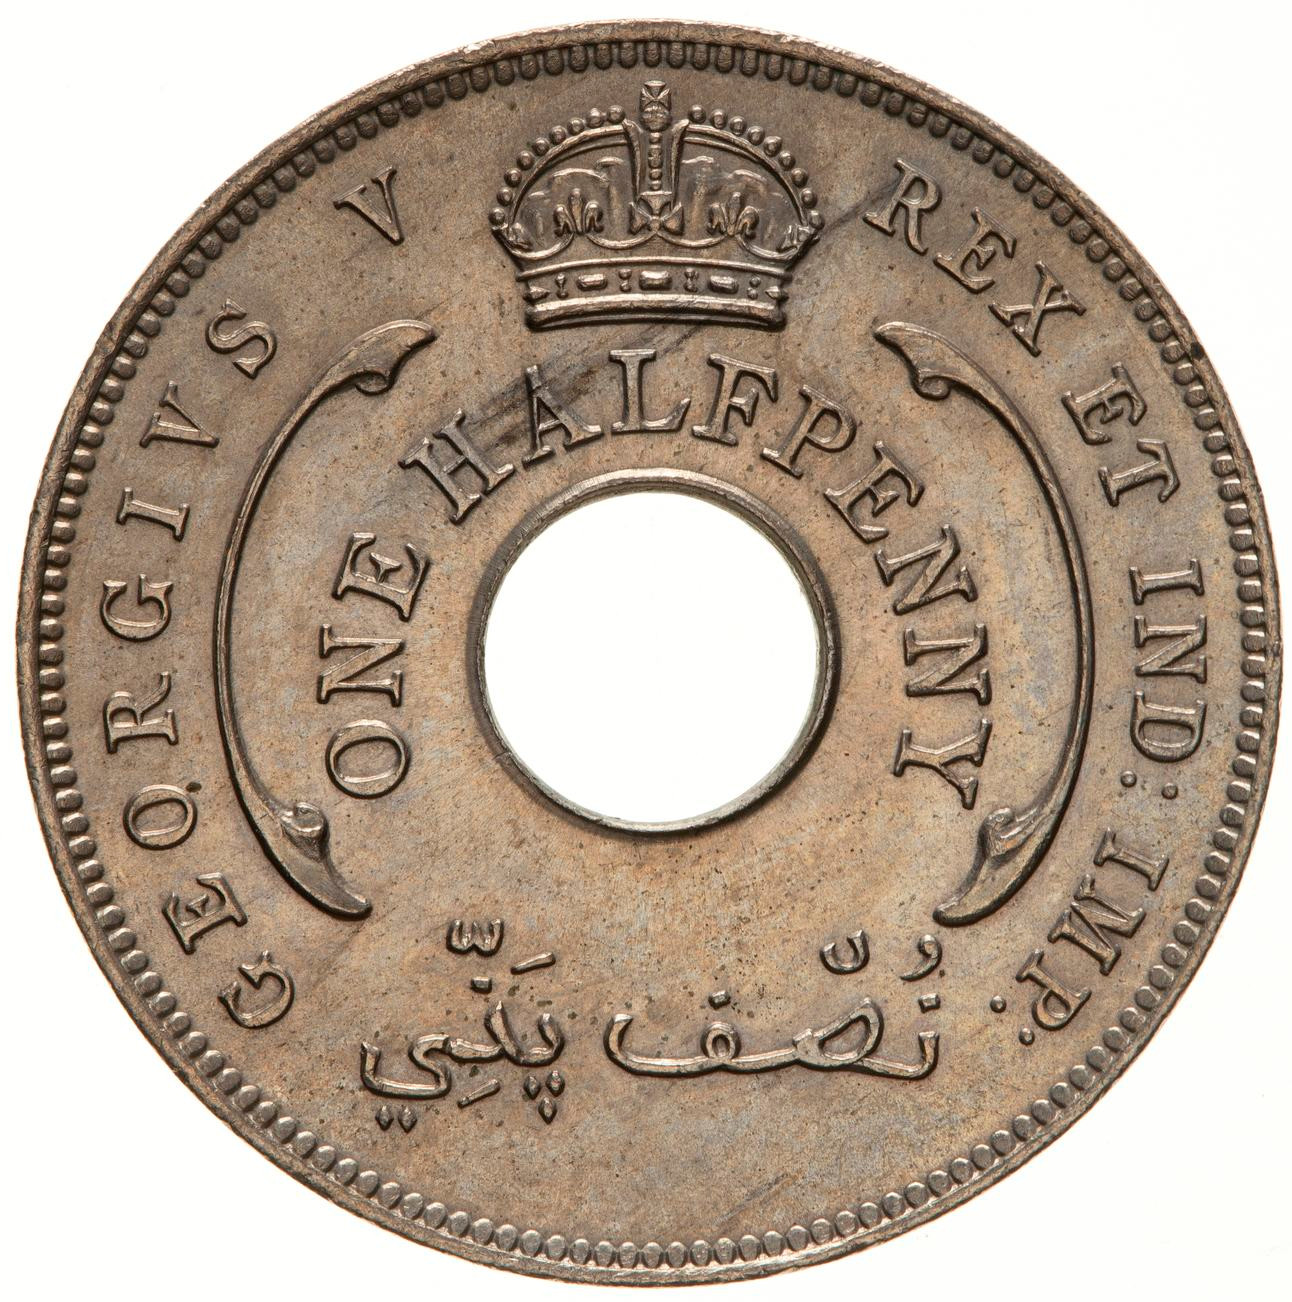 Halfpenny: Photo Coin - 1/2 Penny, British West Africa, 1913